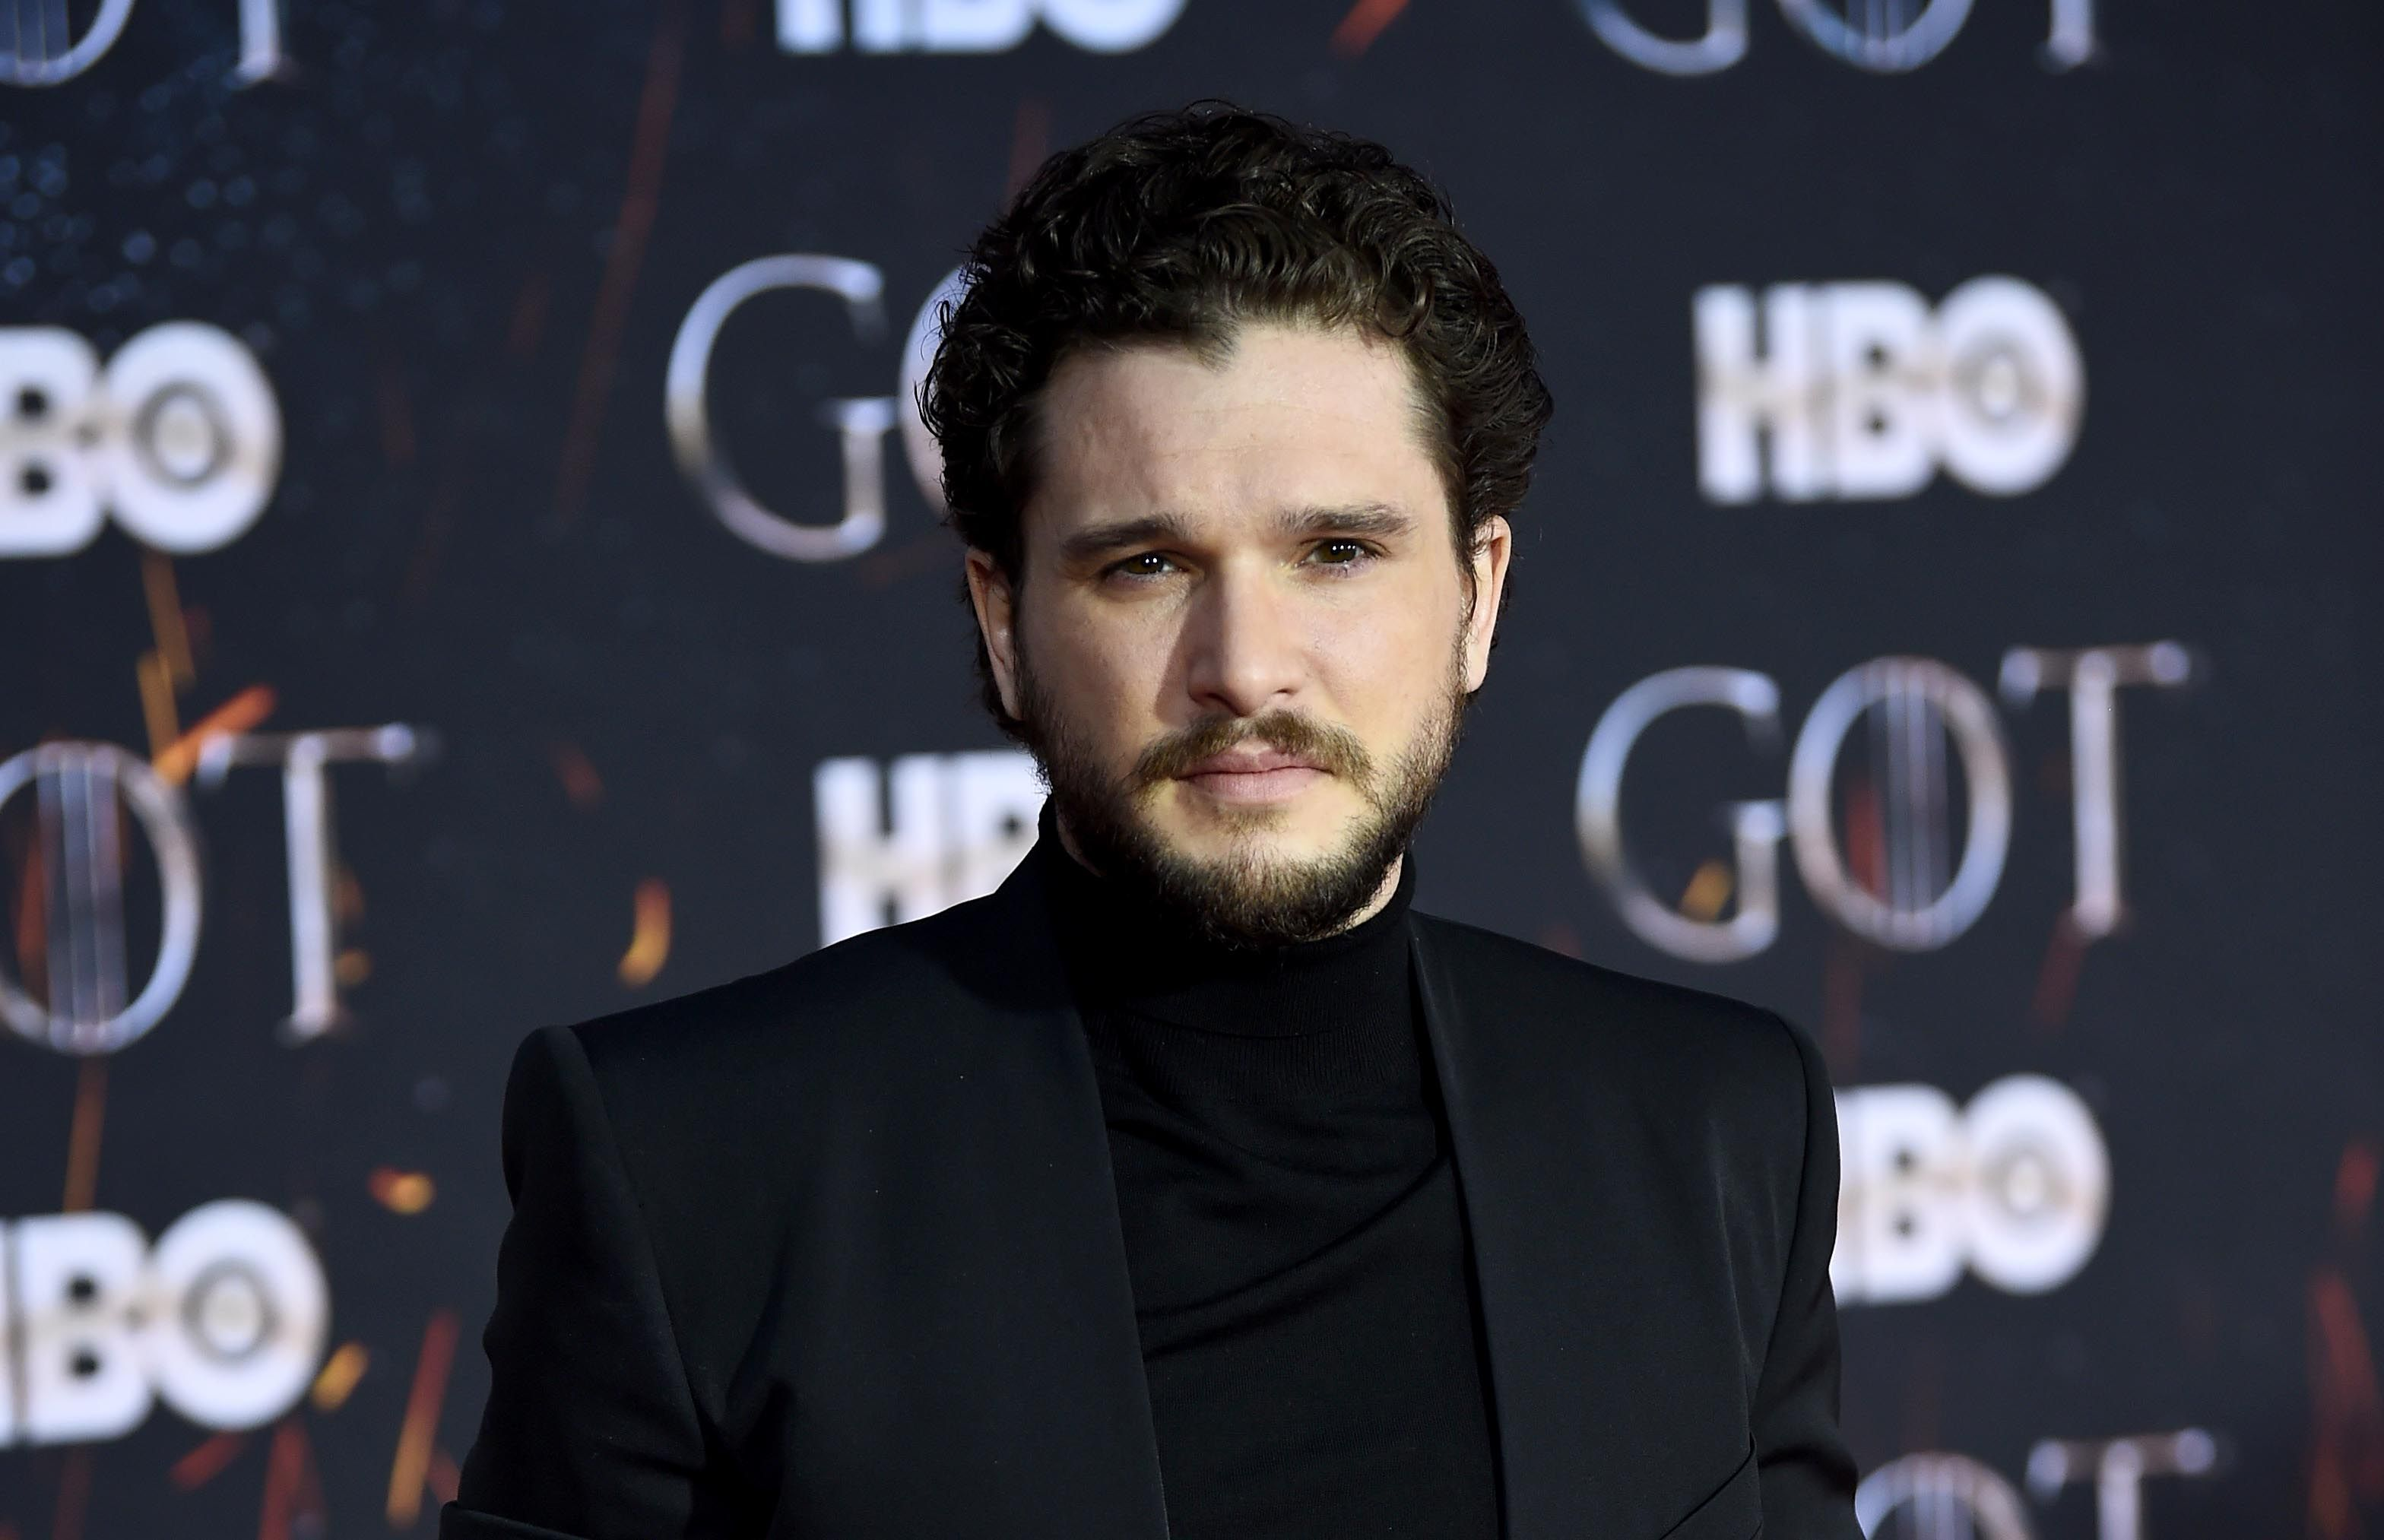 Kit Harington already has an even greater job lined up after Game of Thrones